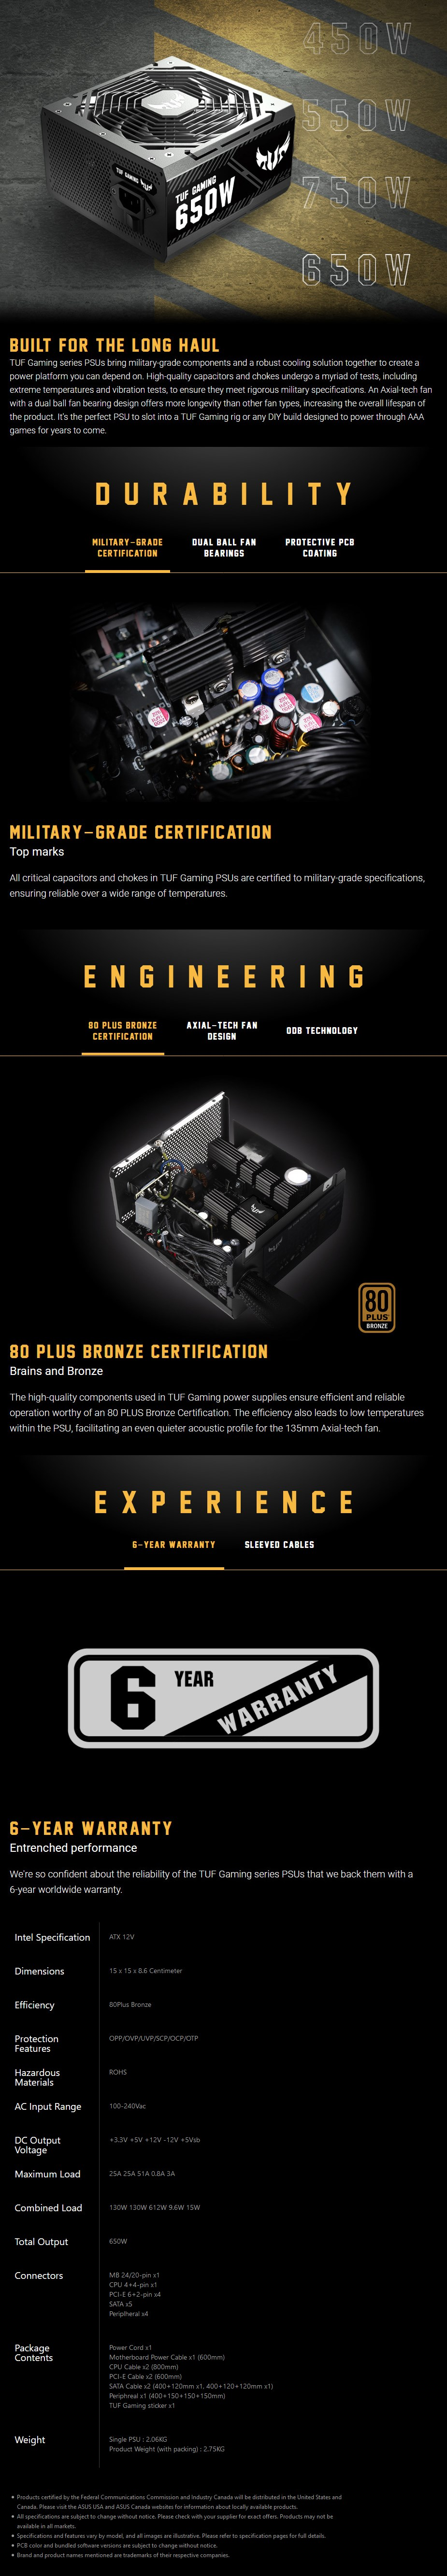 ASUS TUF Gaming 650W 80+ Bronze Fully Modular Power Supply - Overview 1